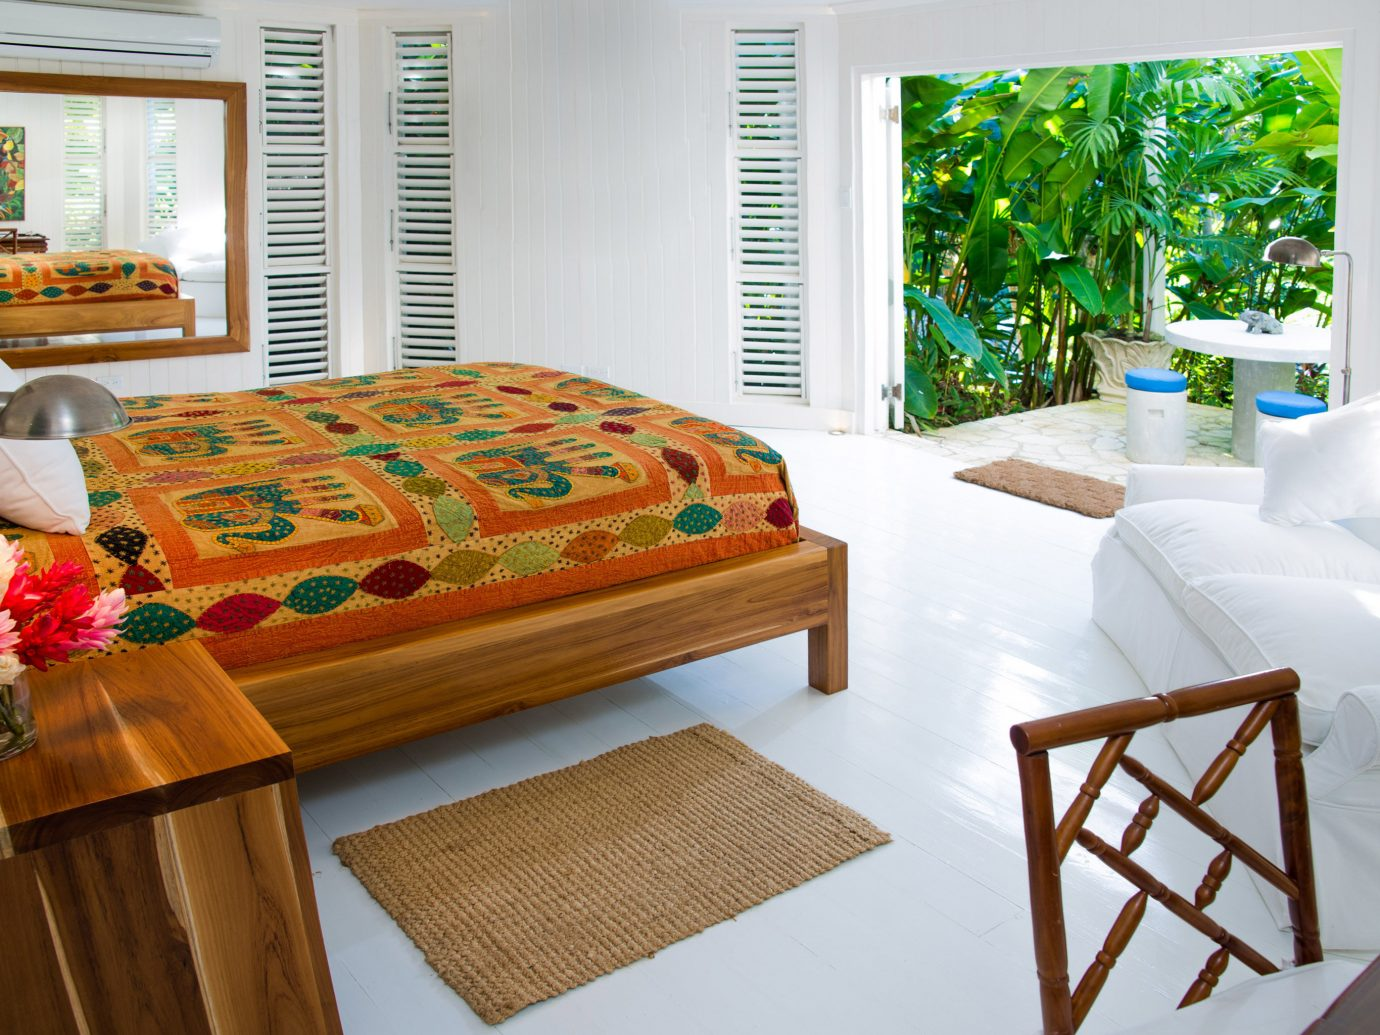 Bedroom at Round Hill Hotel and Villas